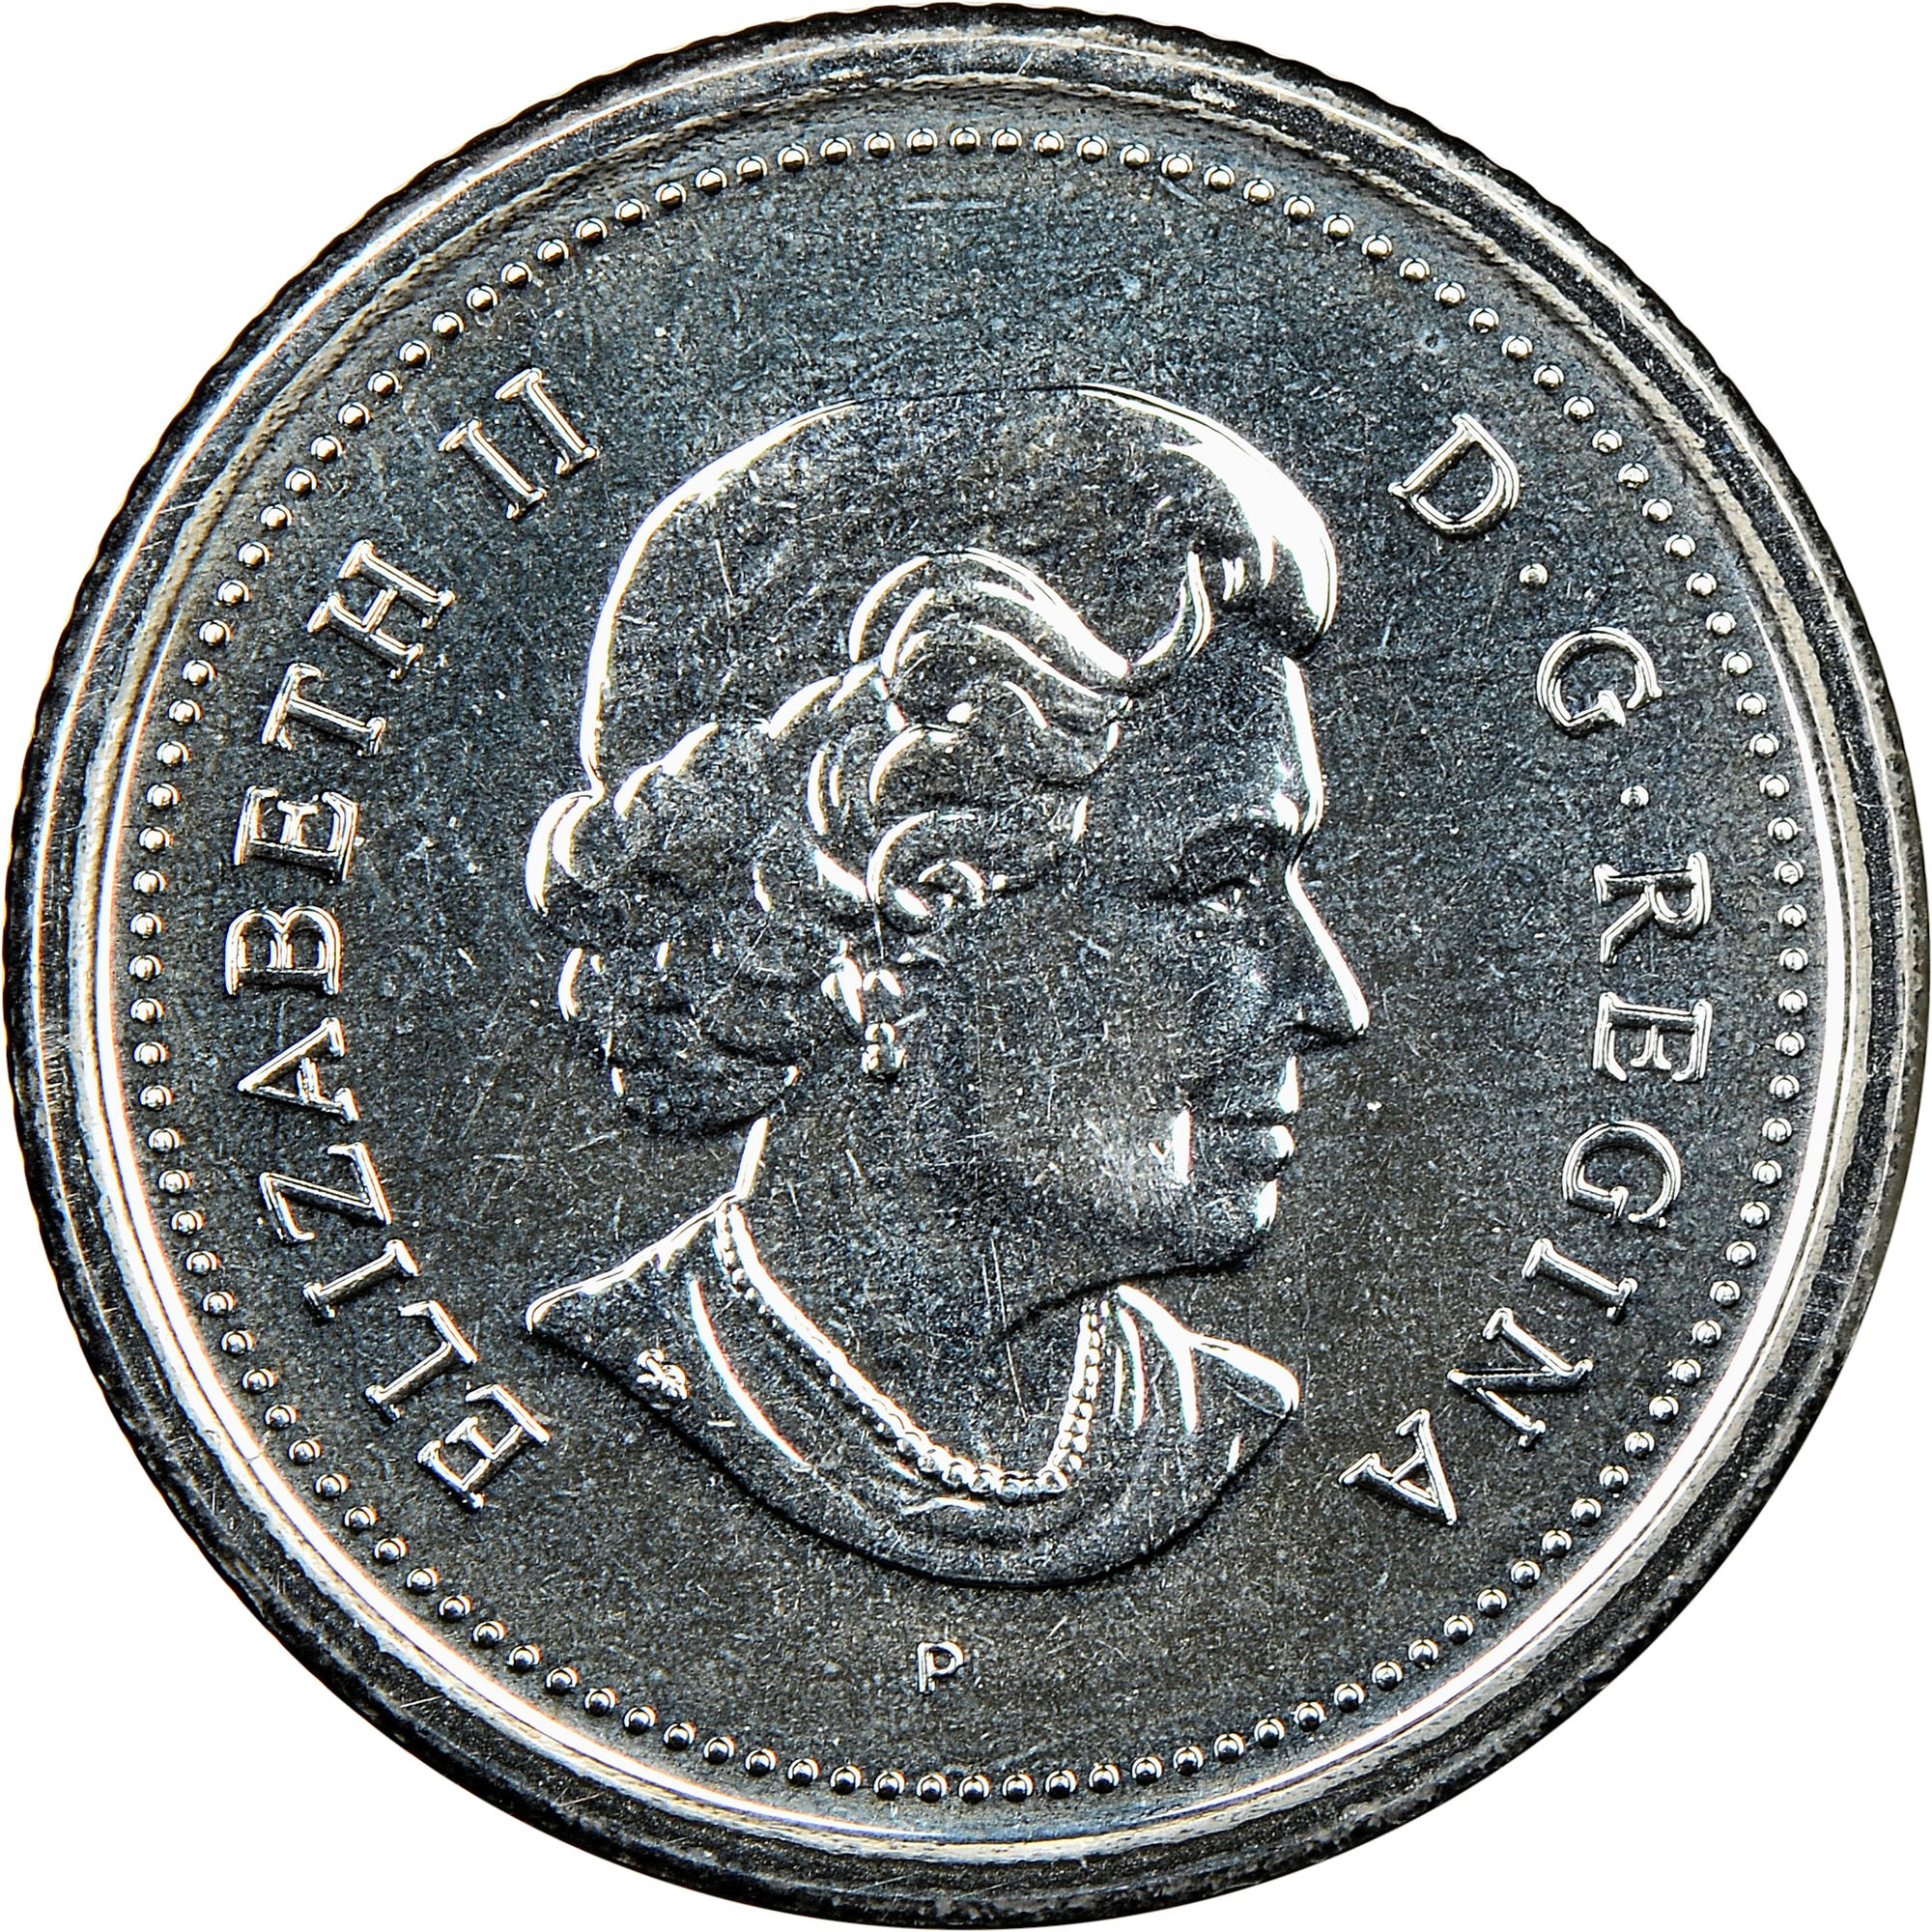 Canada 10 Cents obverse